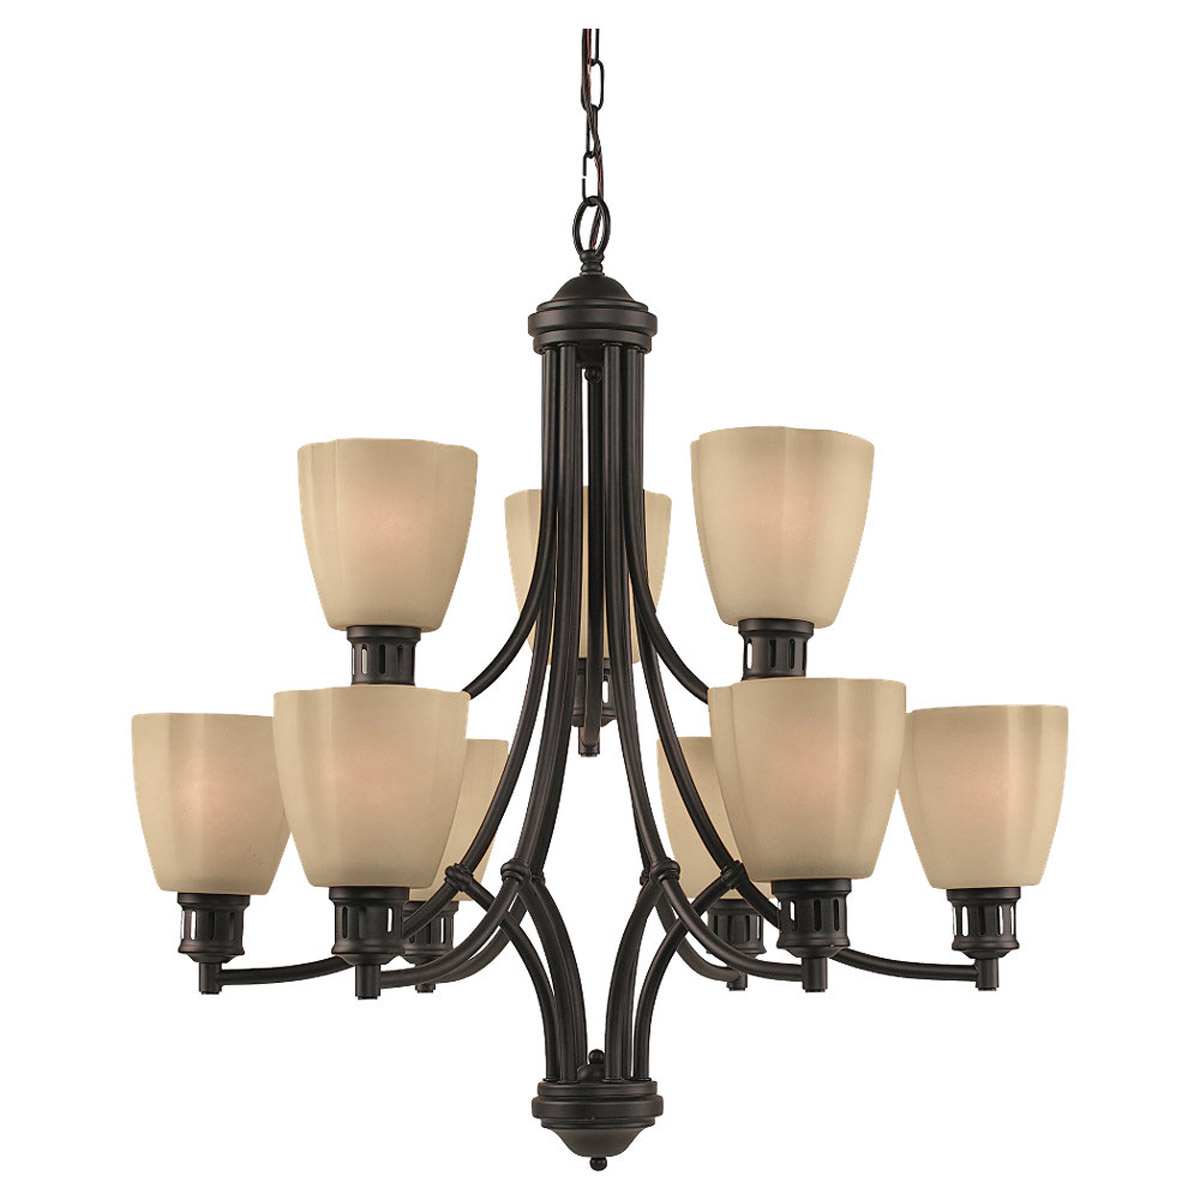 Sea Gull Lighting Century 9 Light Chandelier in Heirloom Bronze 31477-782 photo